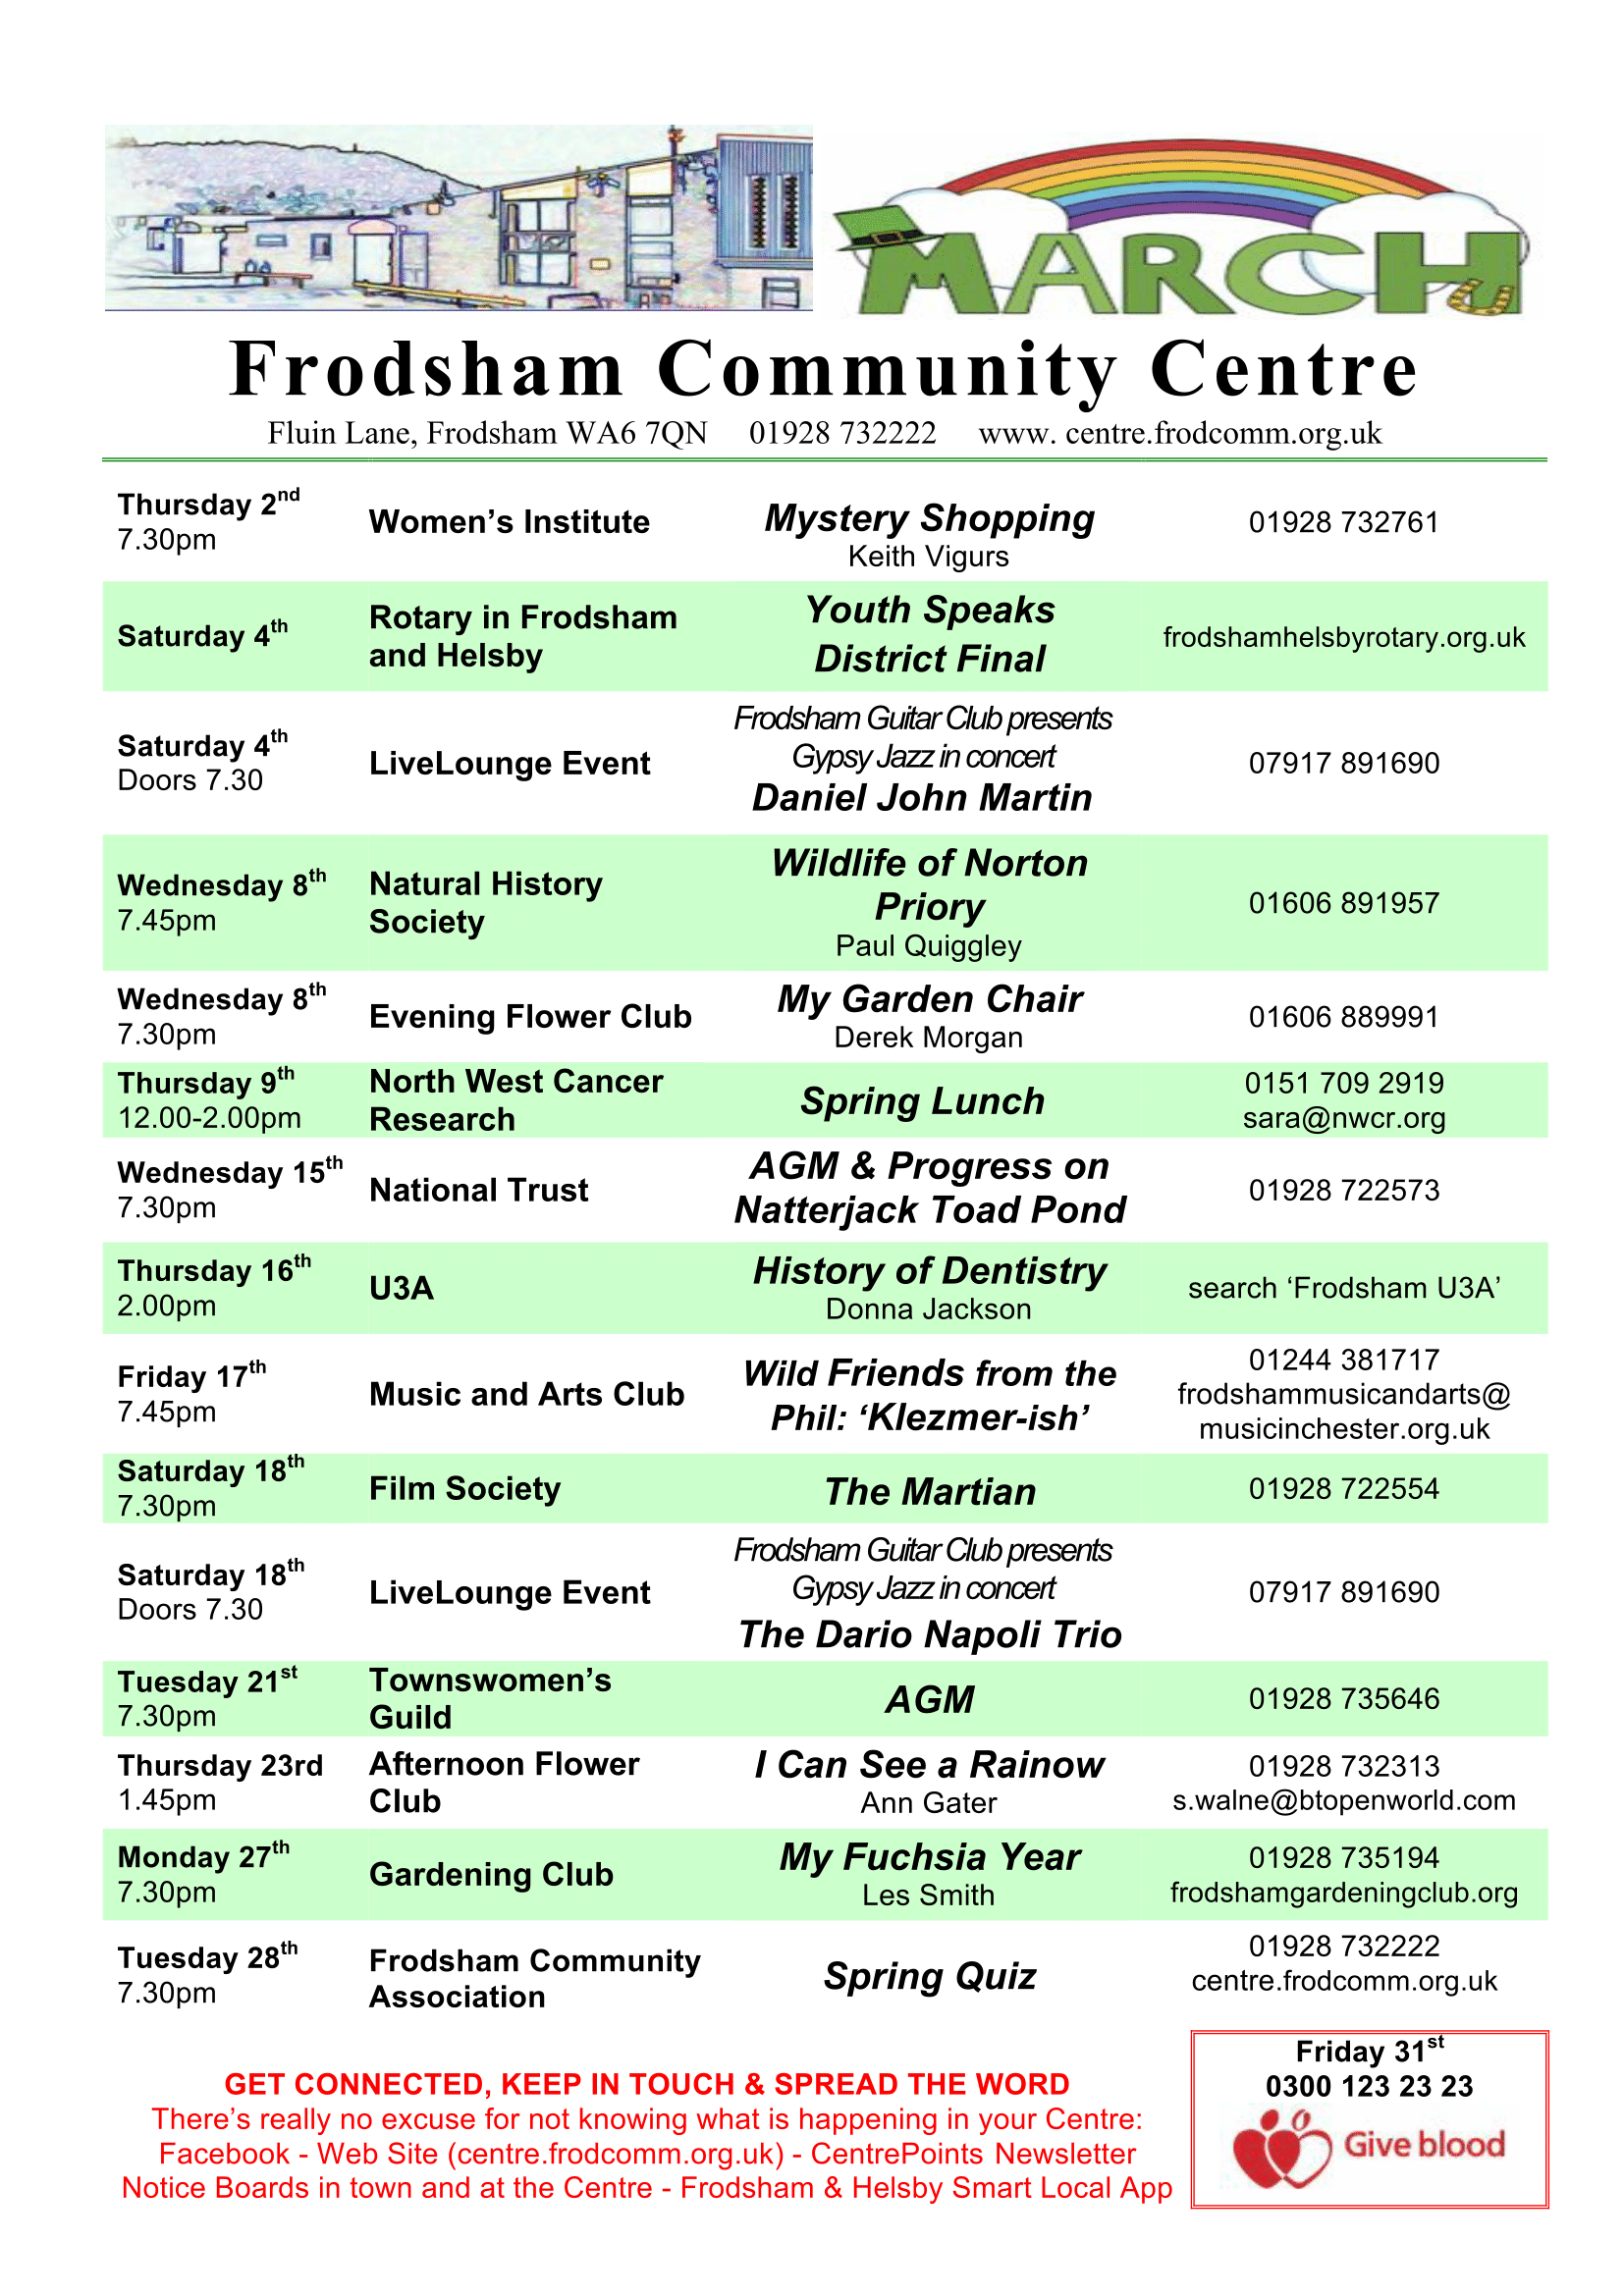 Image of community centre programme